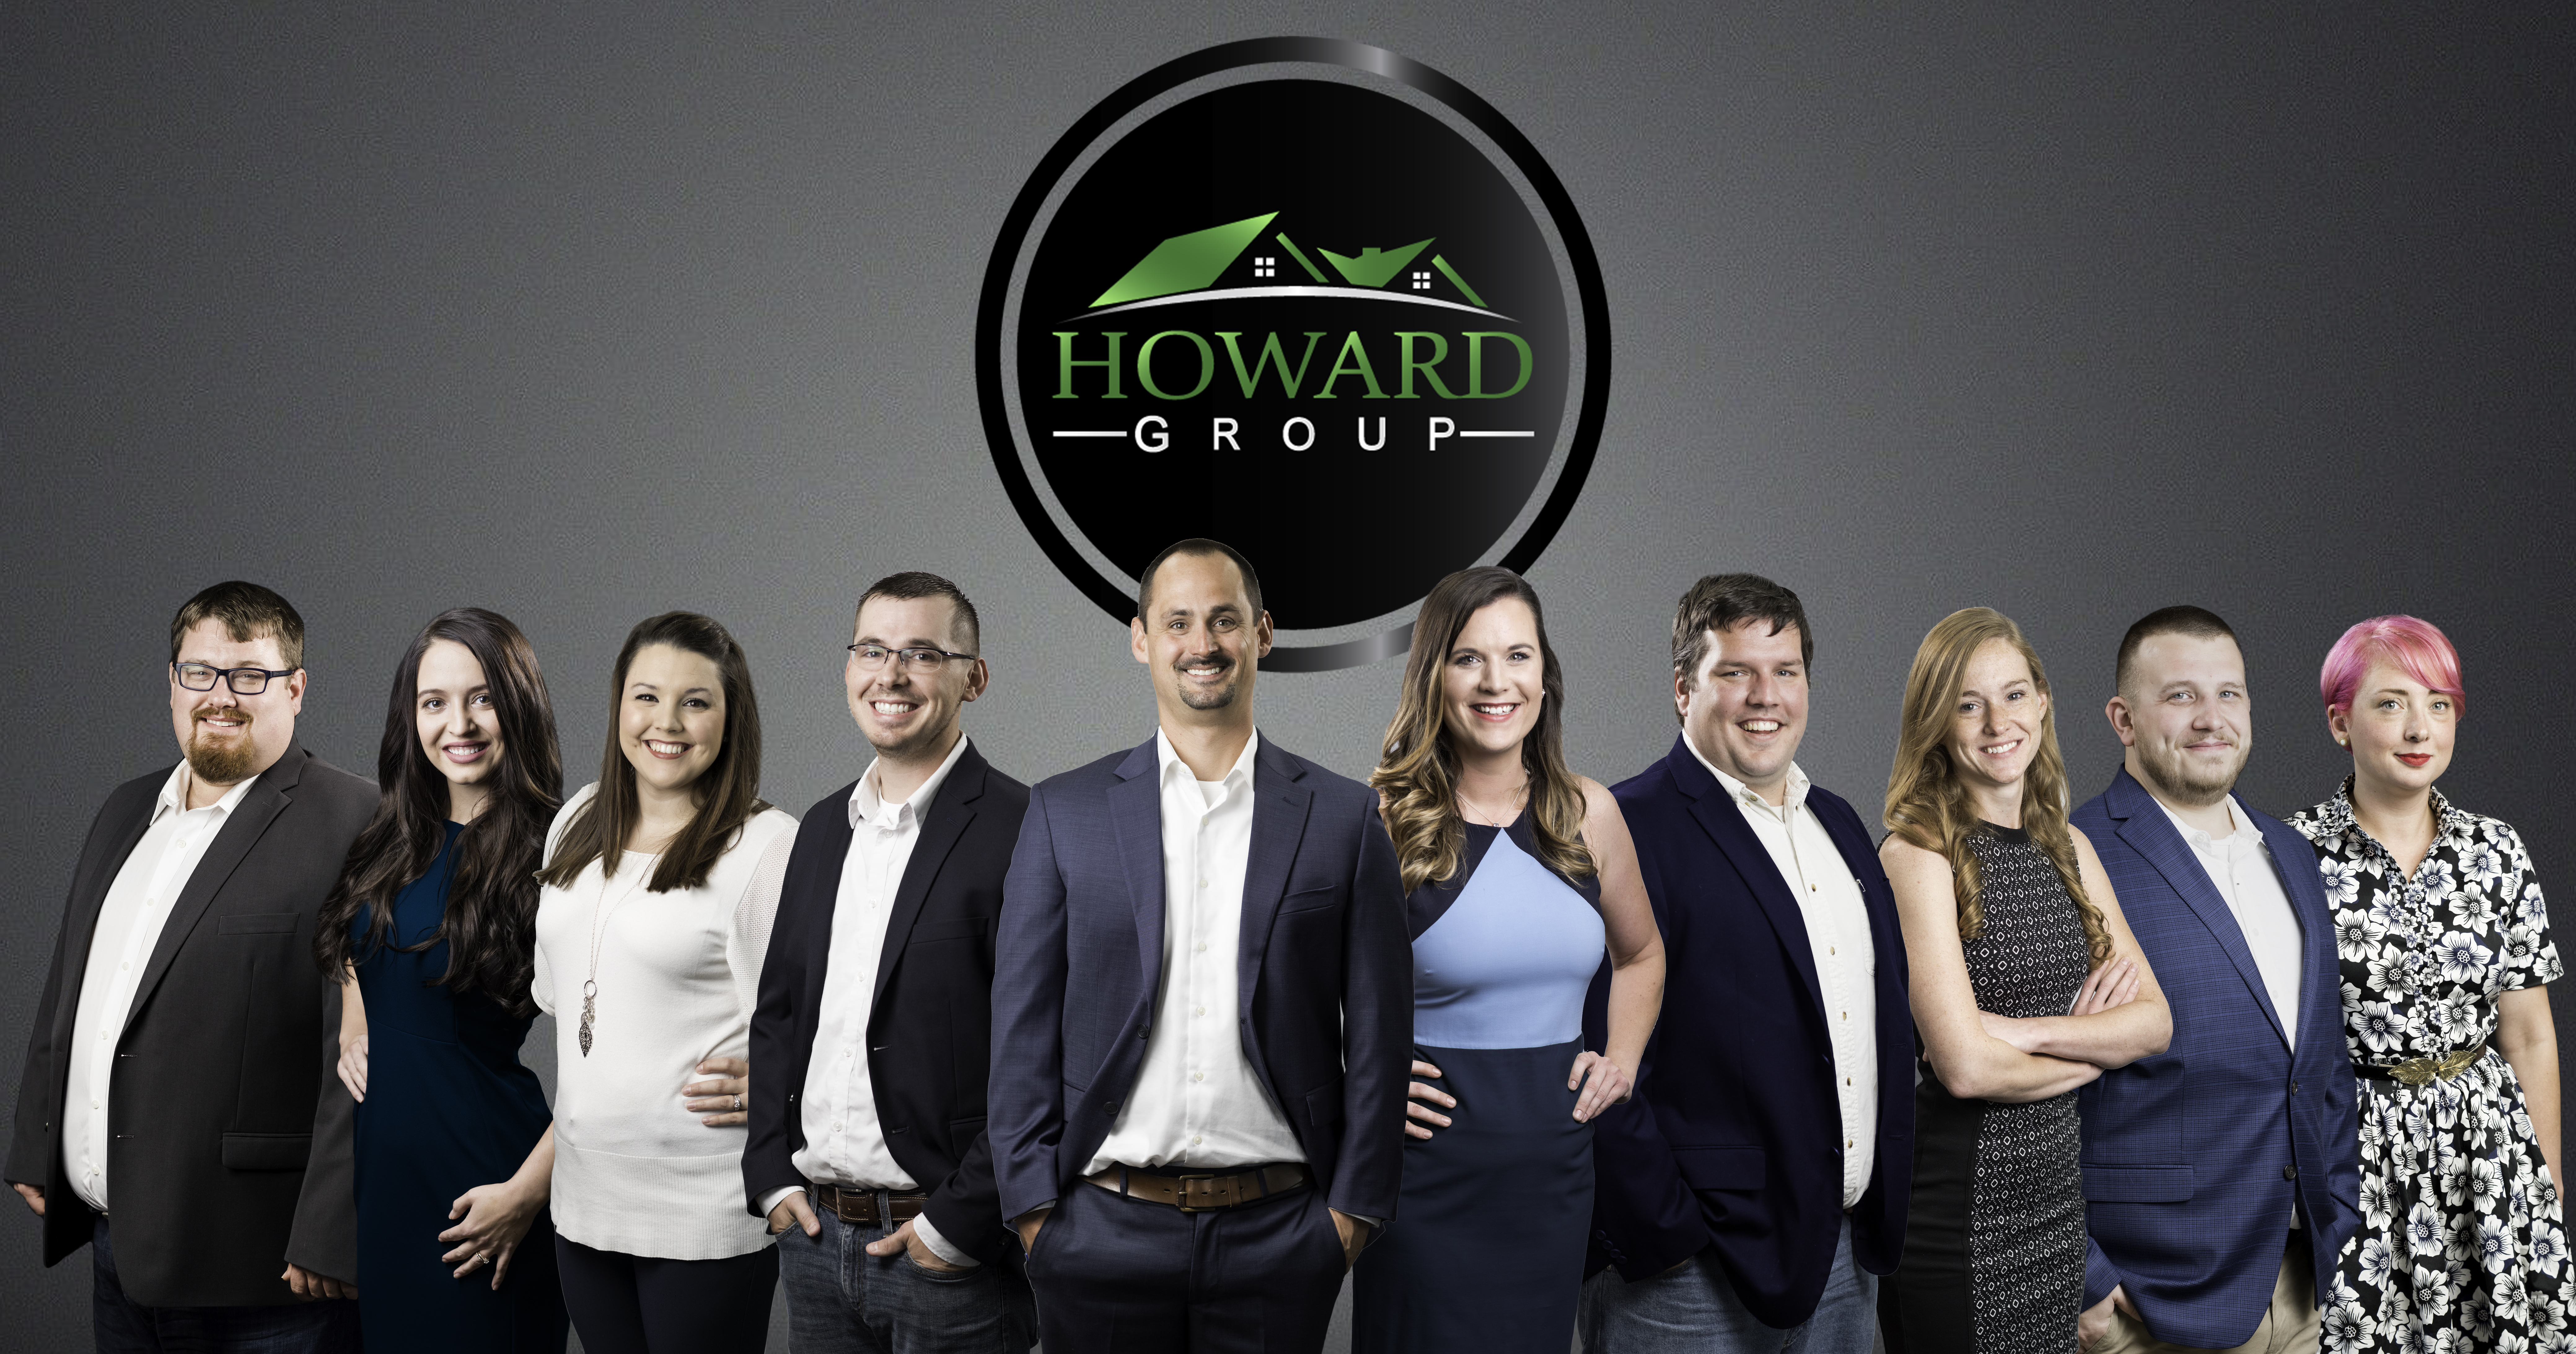 Howard Team July 2019.jpg